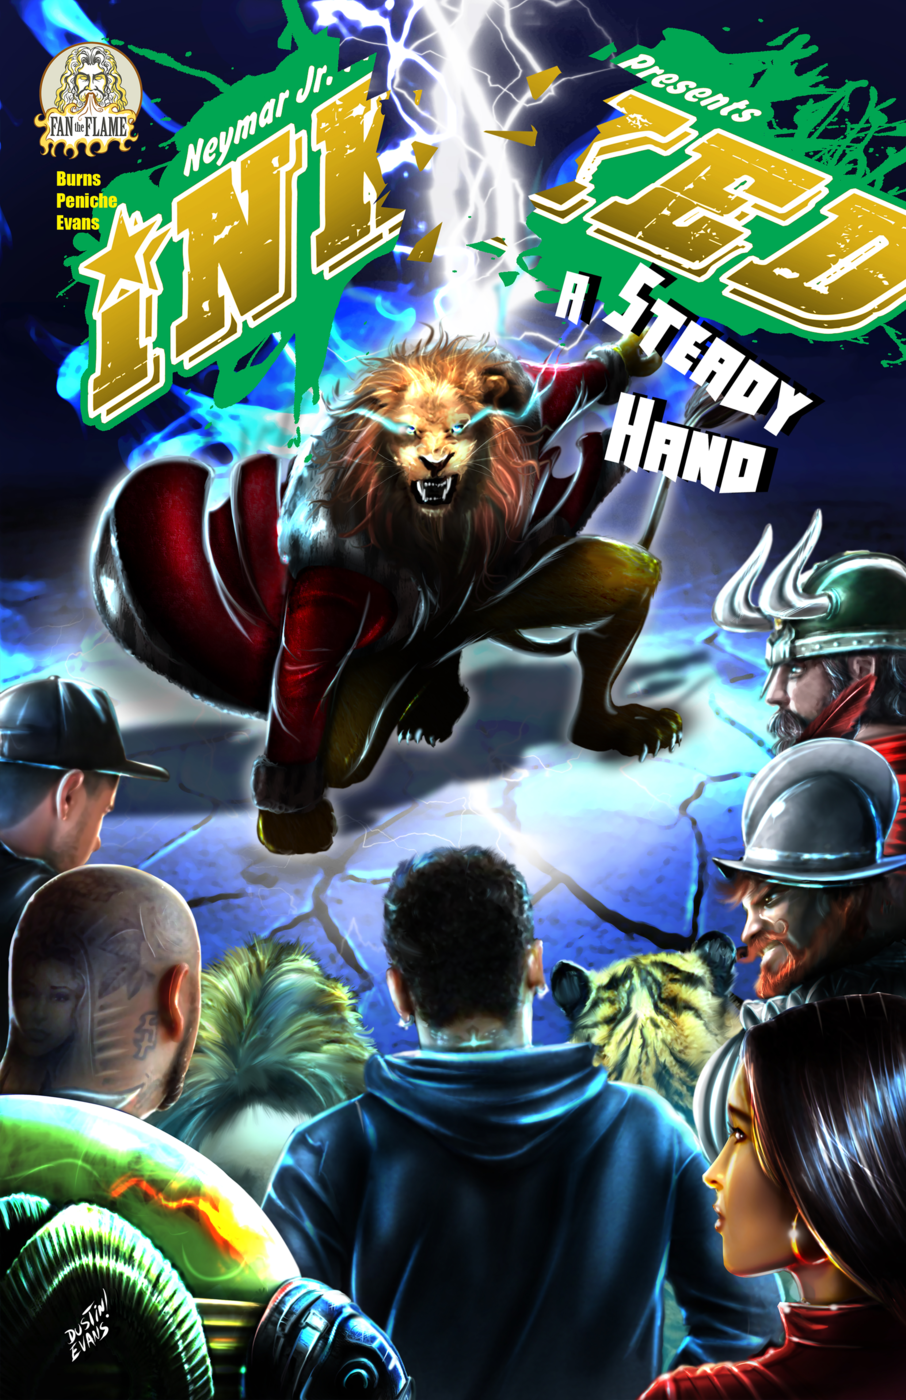 Inked: A Steady Hand #1.1